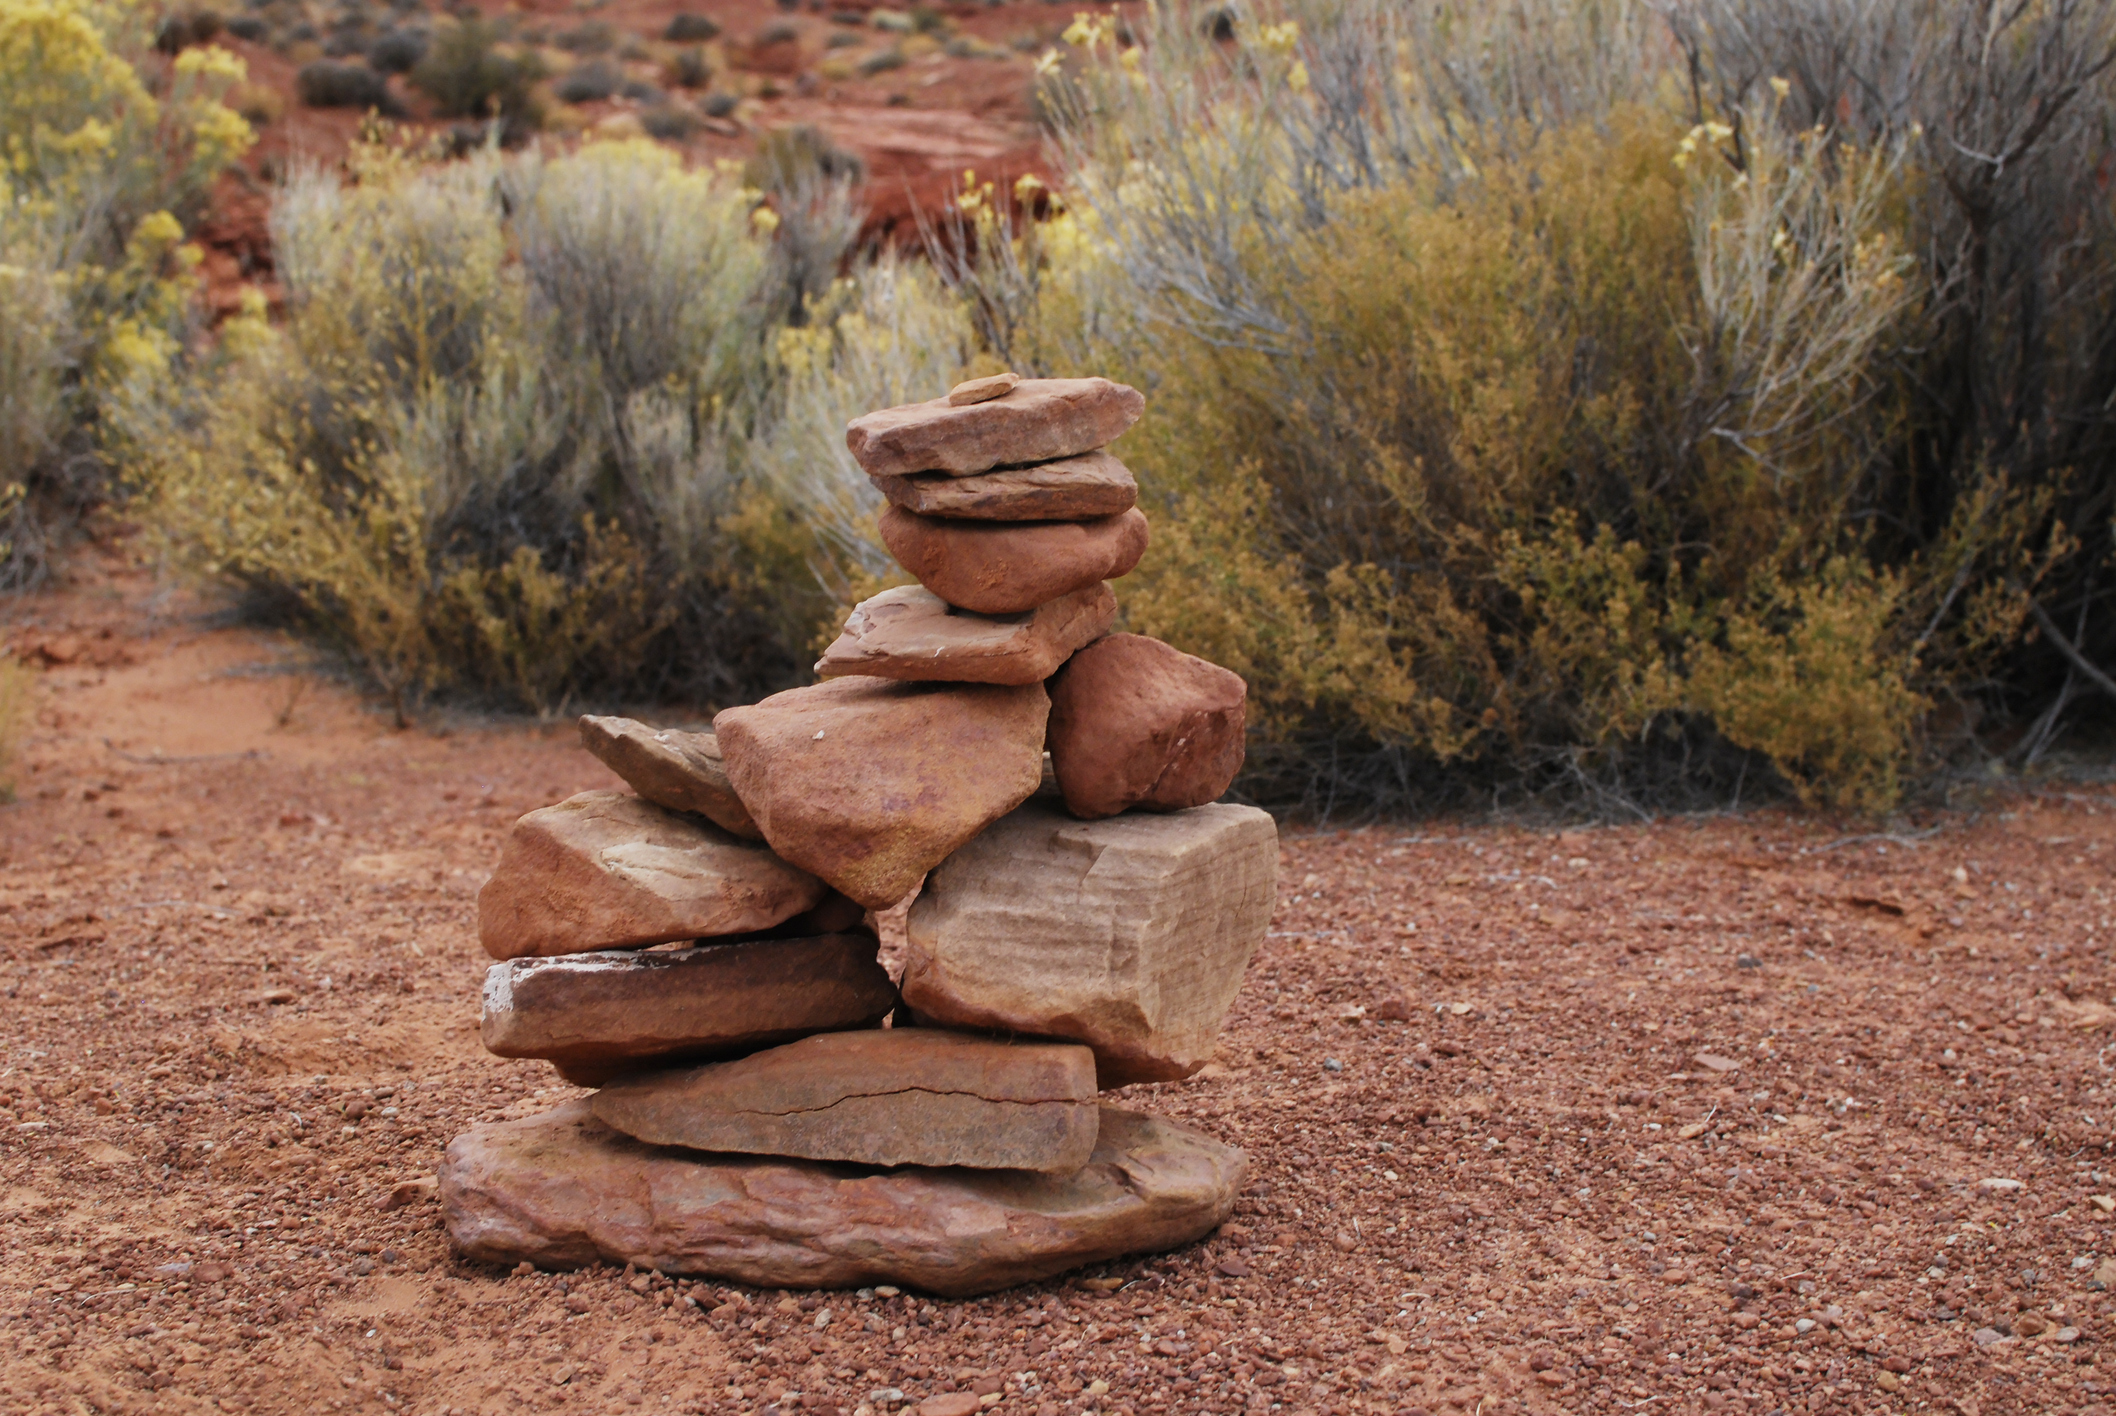 A pile of rocks marking a tril.